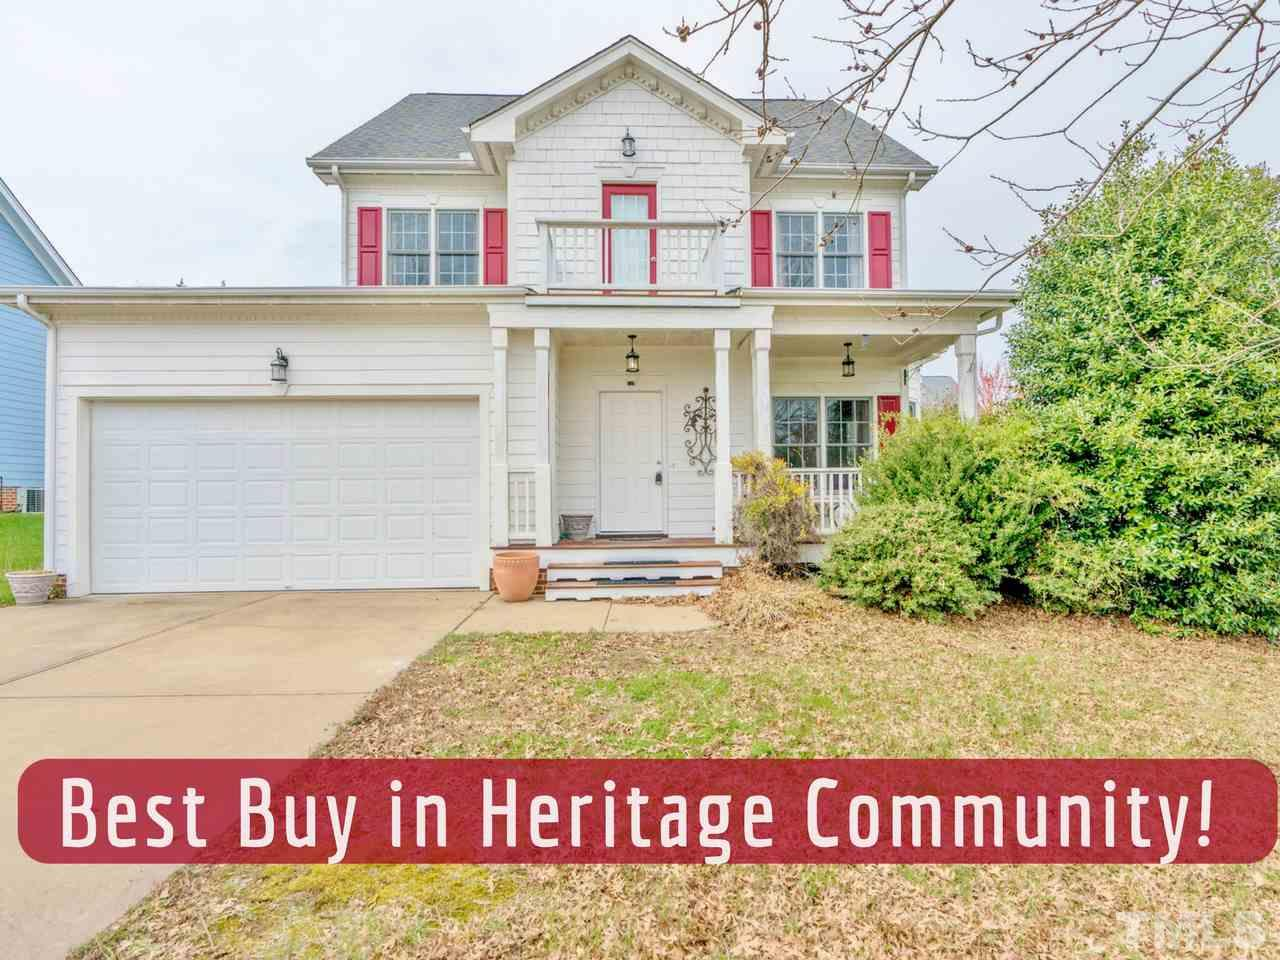 Property for sale at 941 Alba Rose Avenue, Wake Forest,  NC 27587